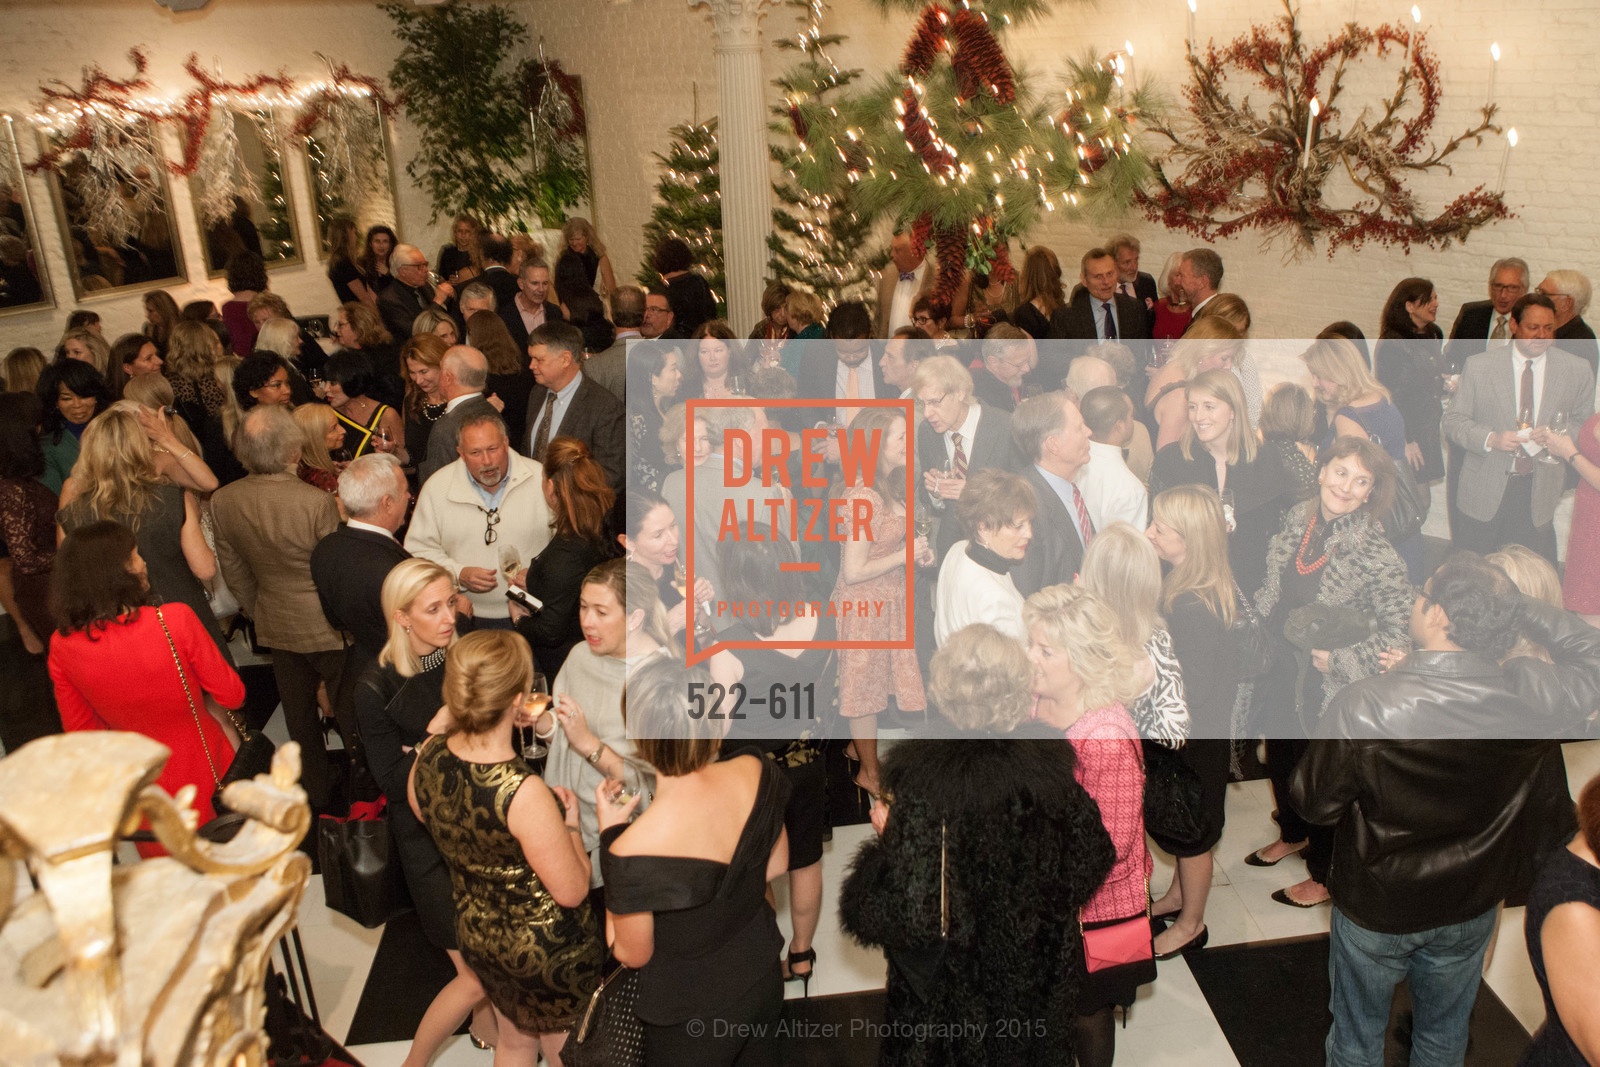 Atmosphere, San Francisco Ballet Auxiliary's Gala Launch party hosted by La Perla., VILLA TAVERA. 27 HOTALING PLACE, December 1st, 2015,Drew Altizer, Drew Altizer Photography, full-service agency, private events, San Francisco photographer, photographer california